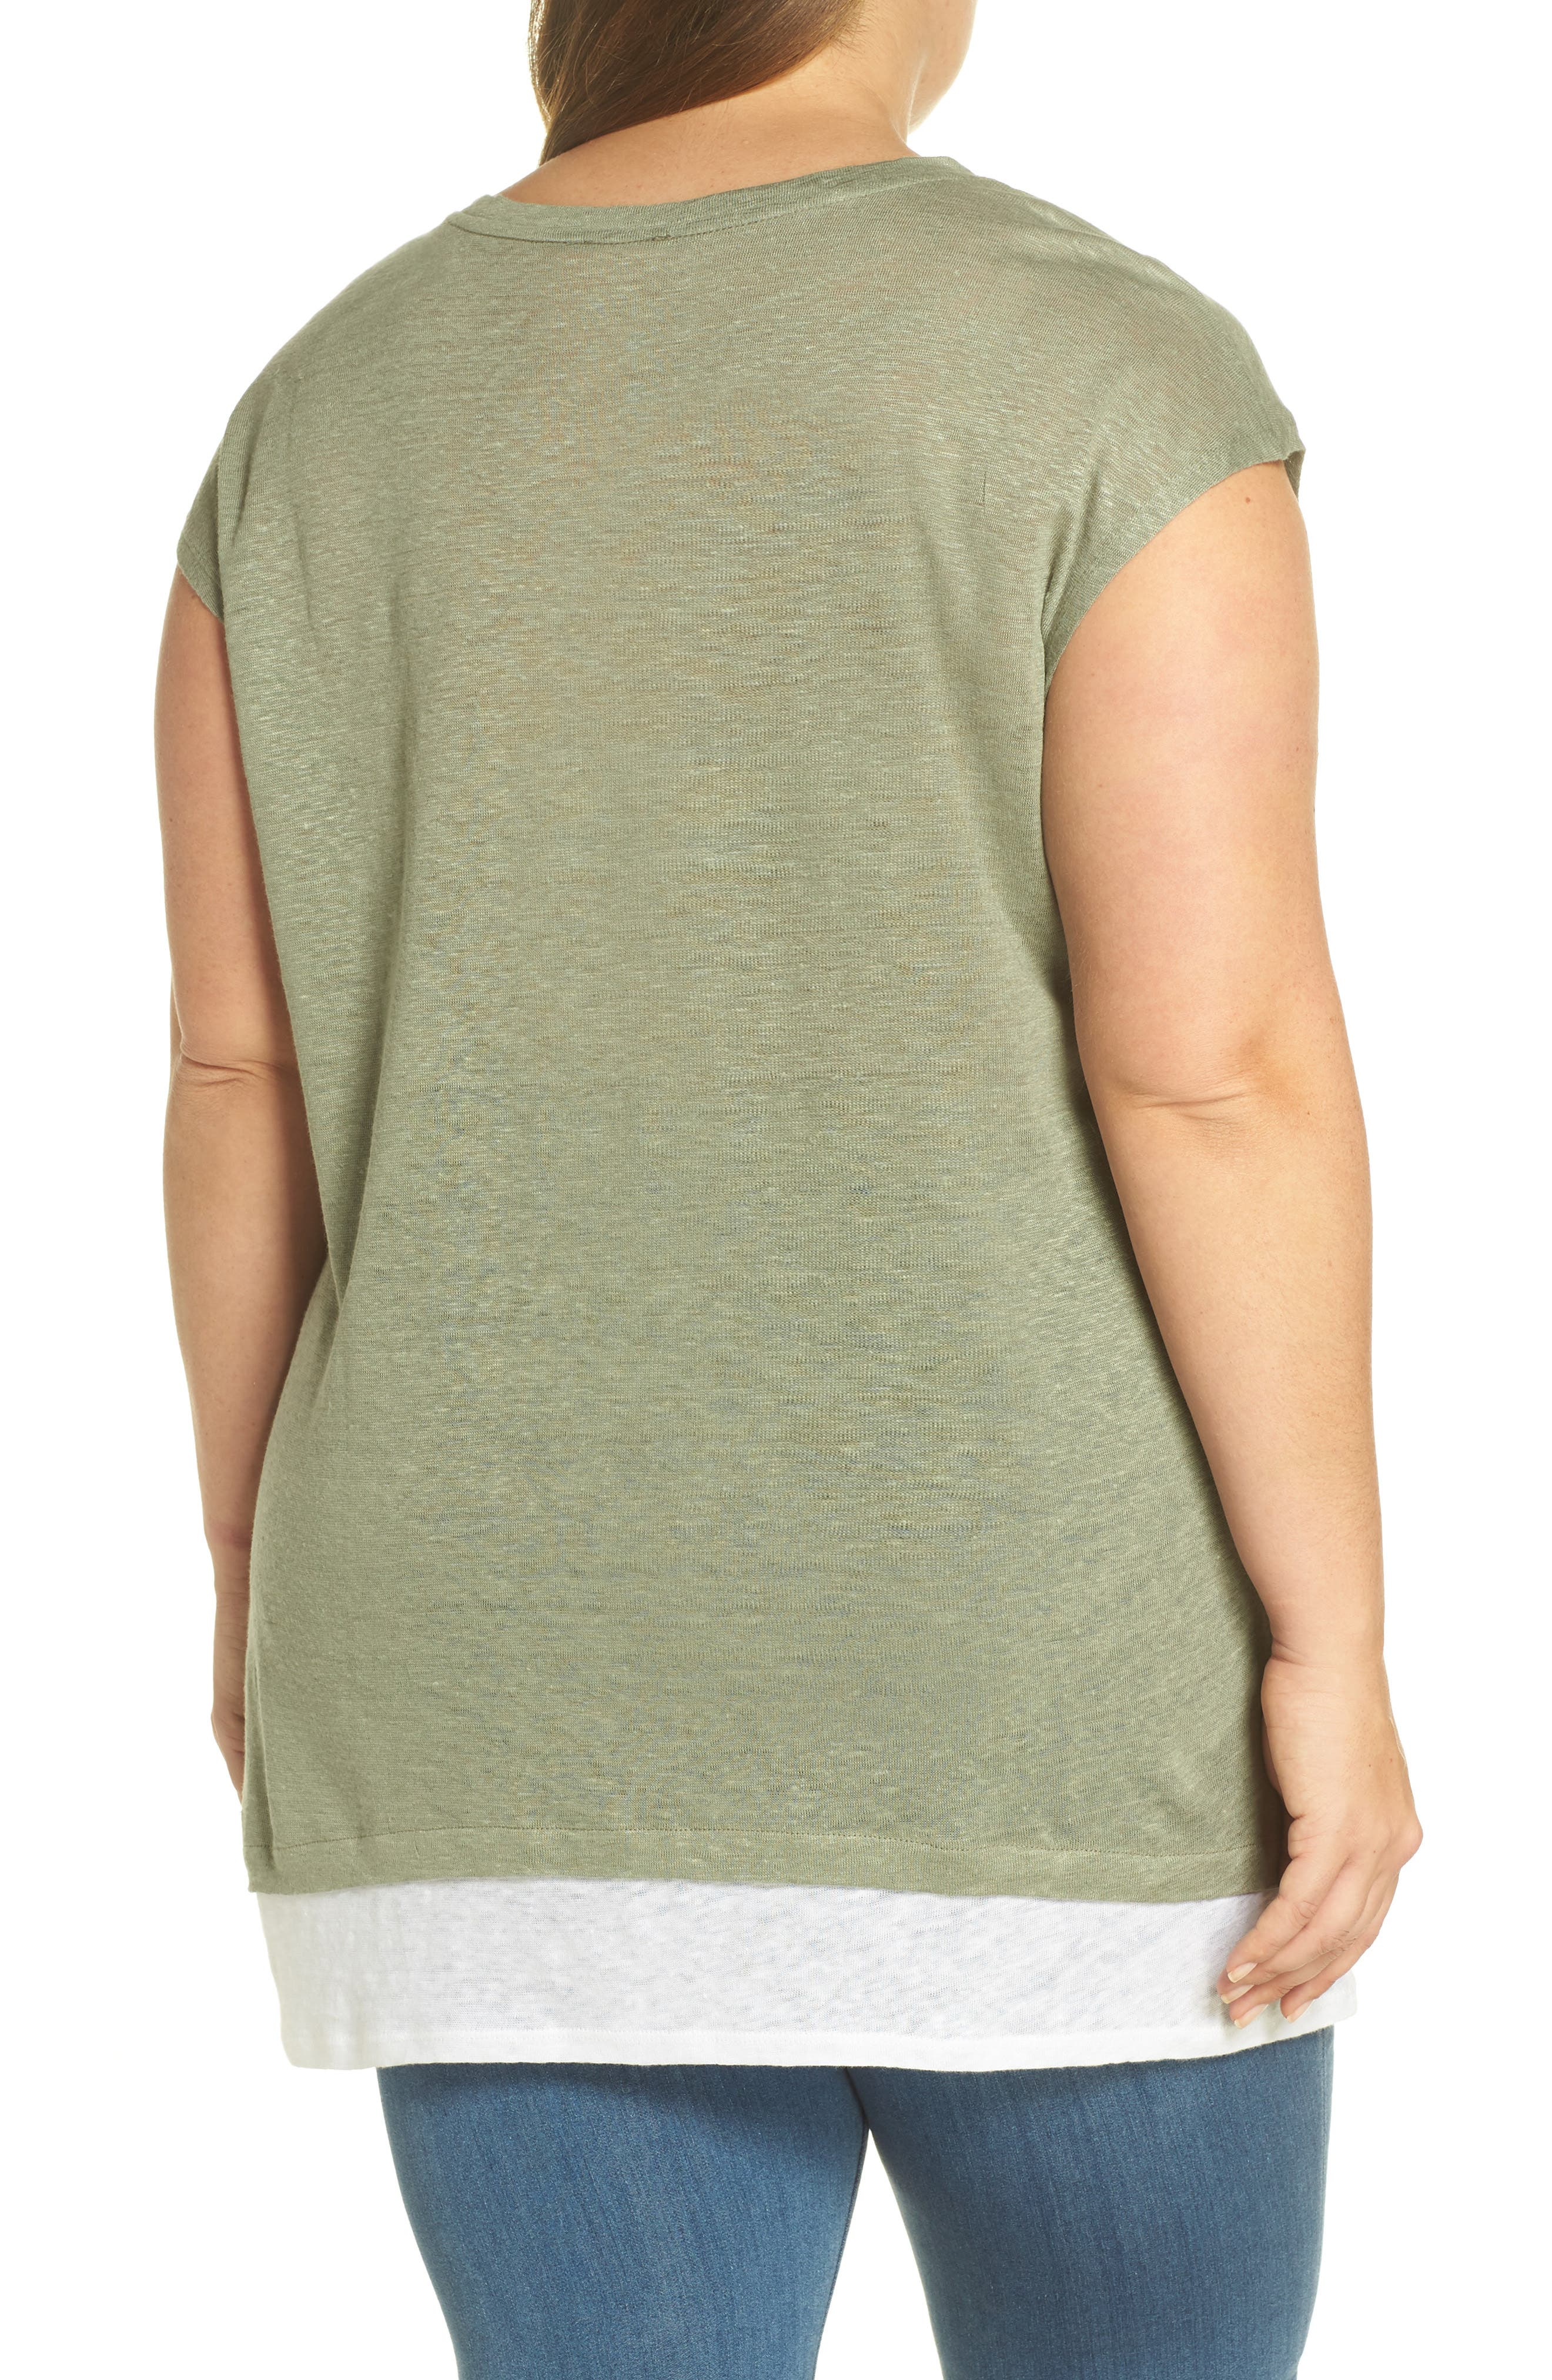 Layered Look Tee,                             Alternate thumbnail 2, color,                             Canopy Green